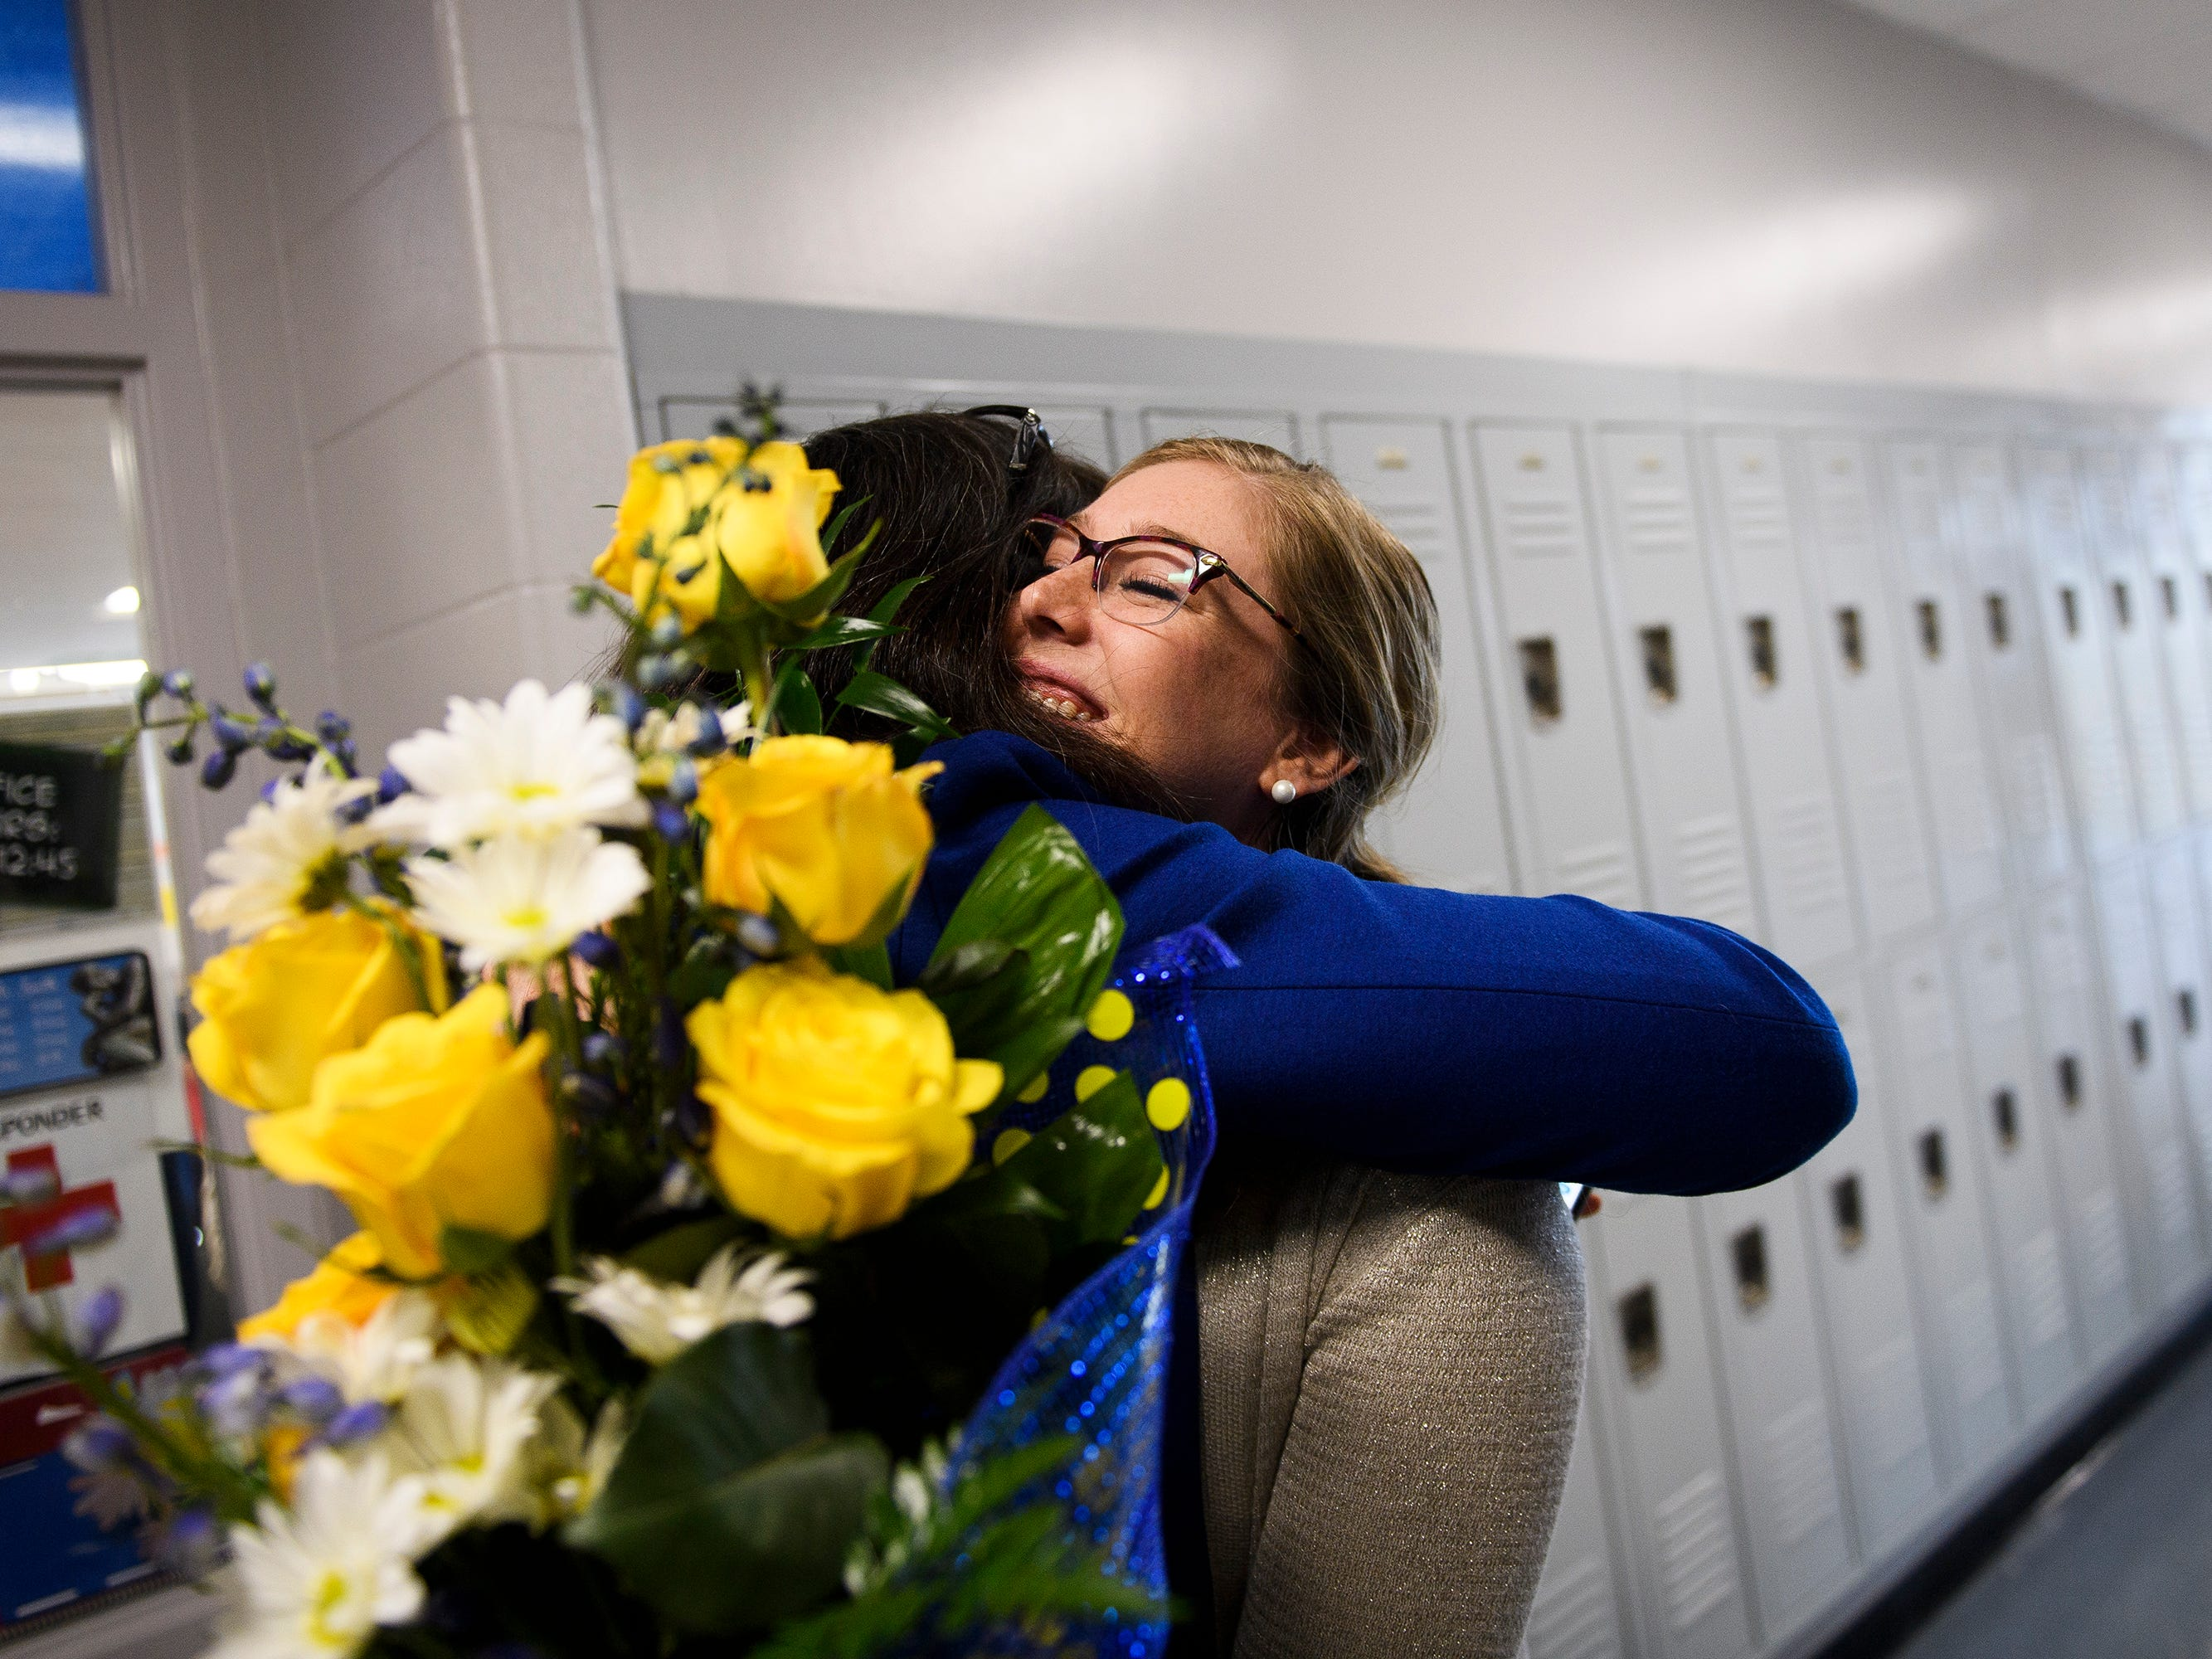 Shelley Smith hugs Teri Brinkman after it is announced she is one of five finalists for South Carolina Teacher of the Year at Travelers Rest High School Wednesday, March 13, 2019.